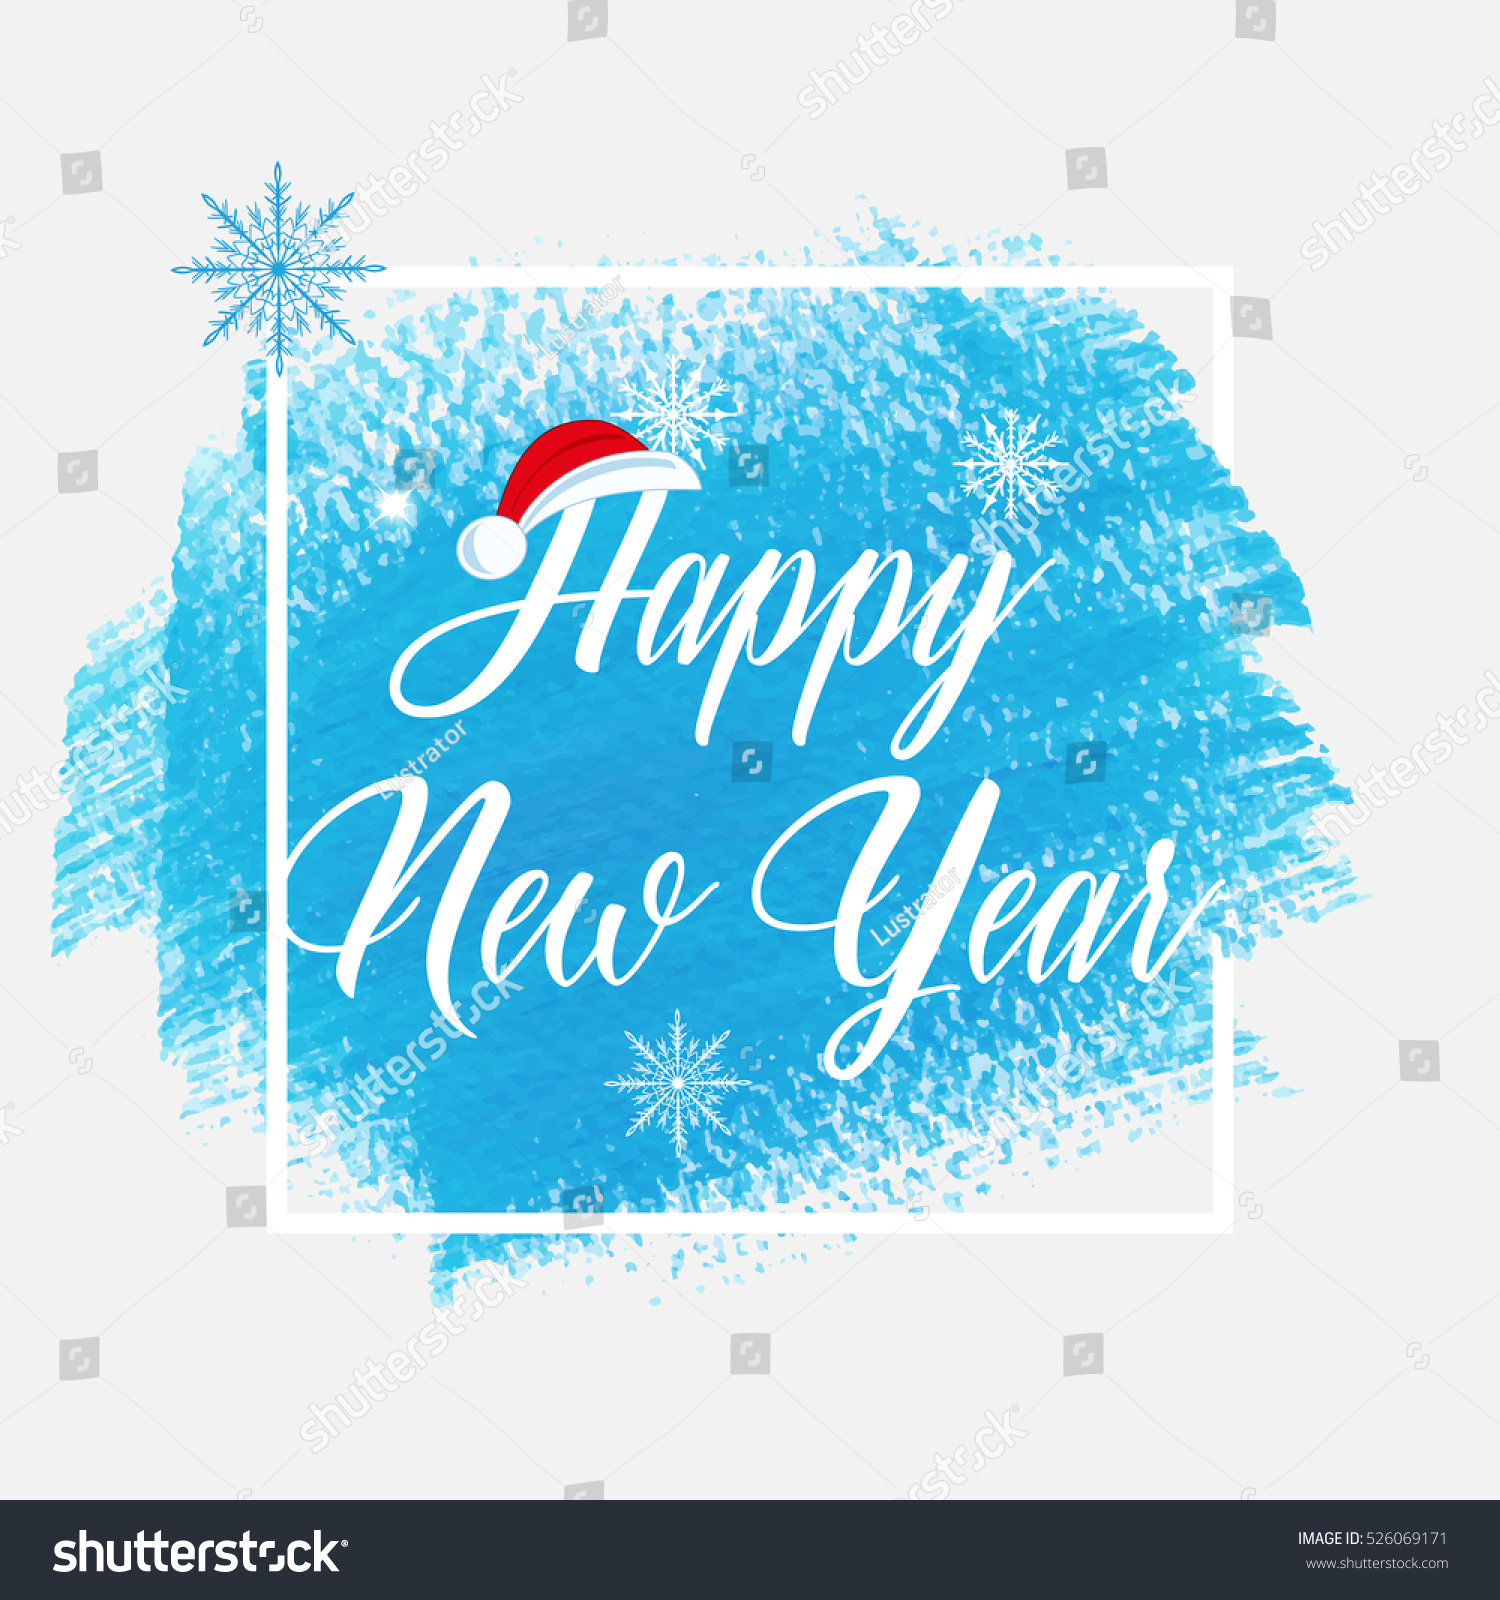 happy new year holiday sign text over abstract blue brush paint background vector illustration